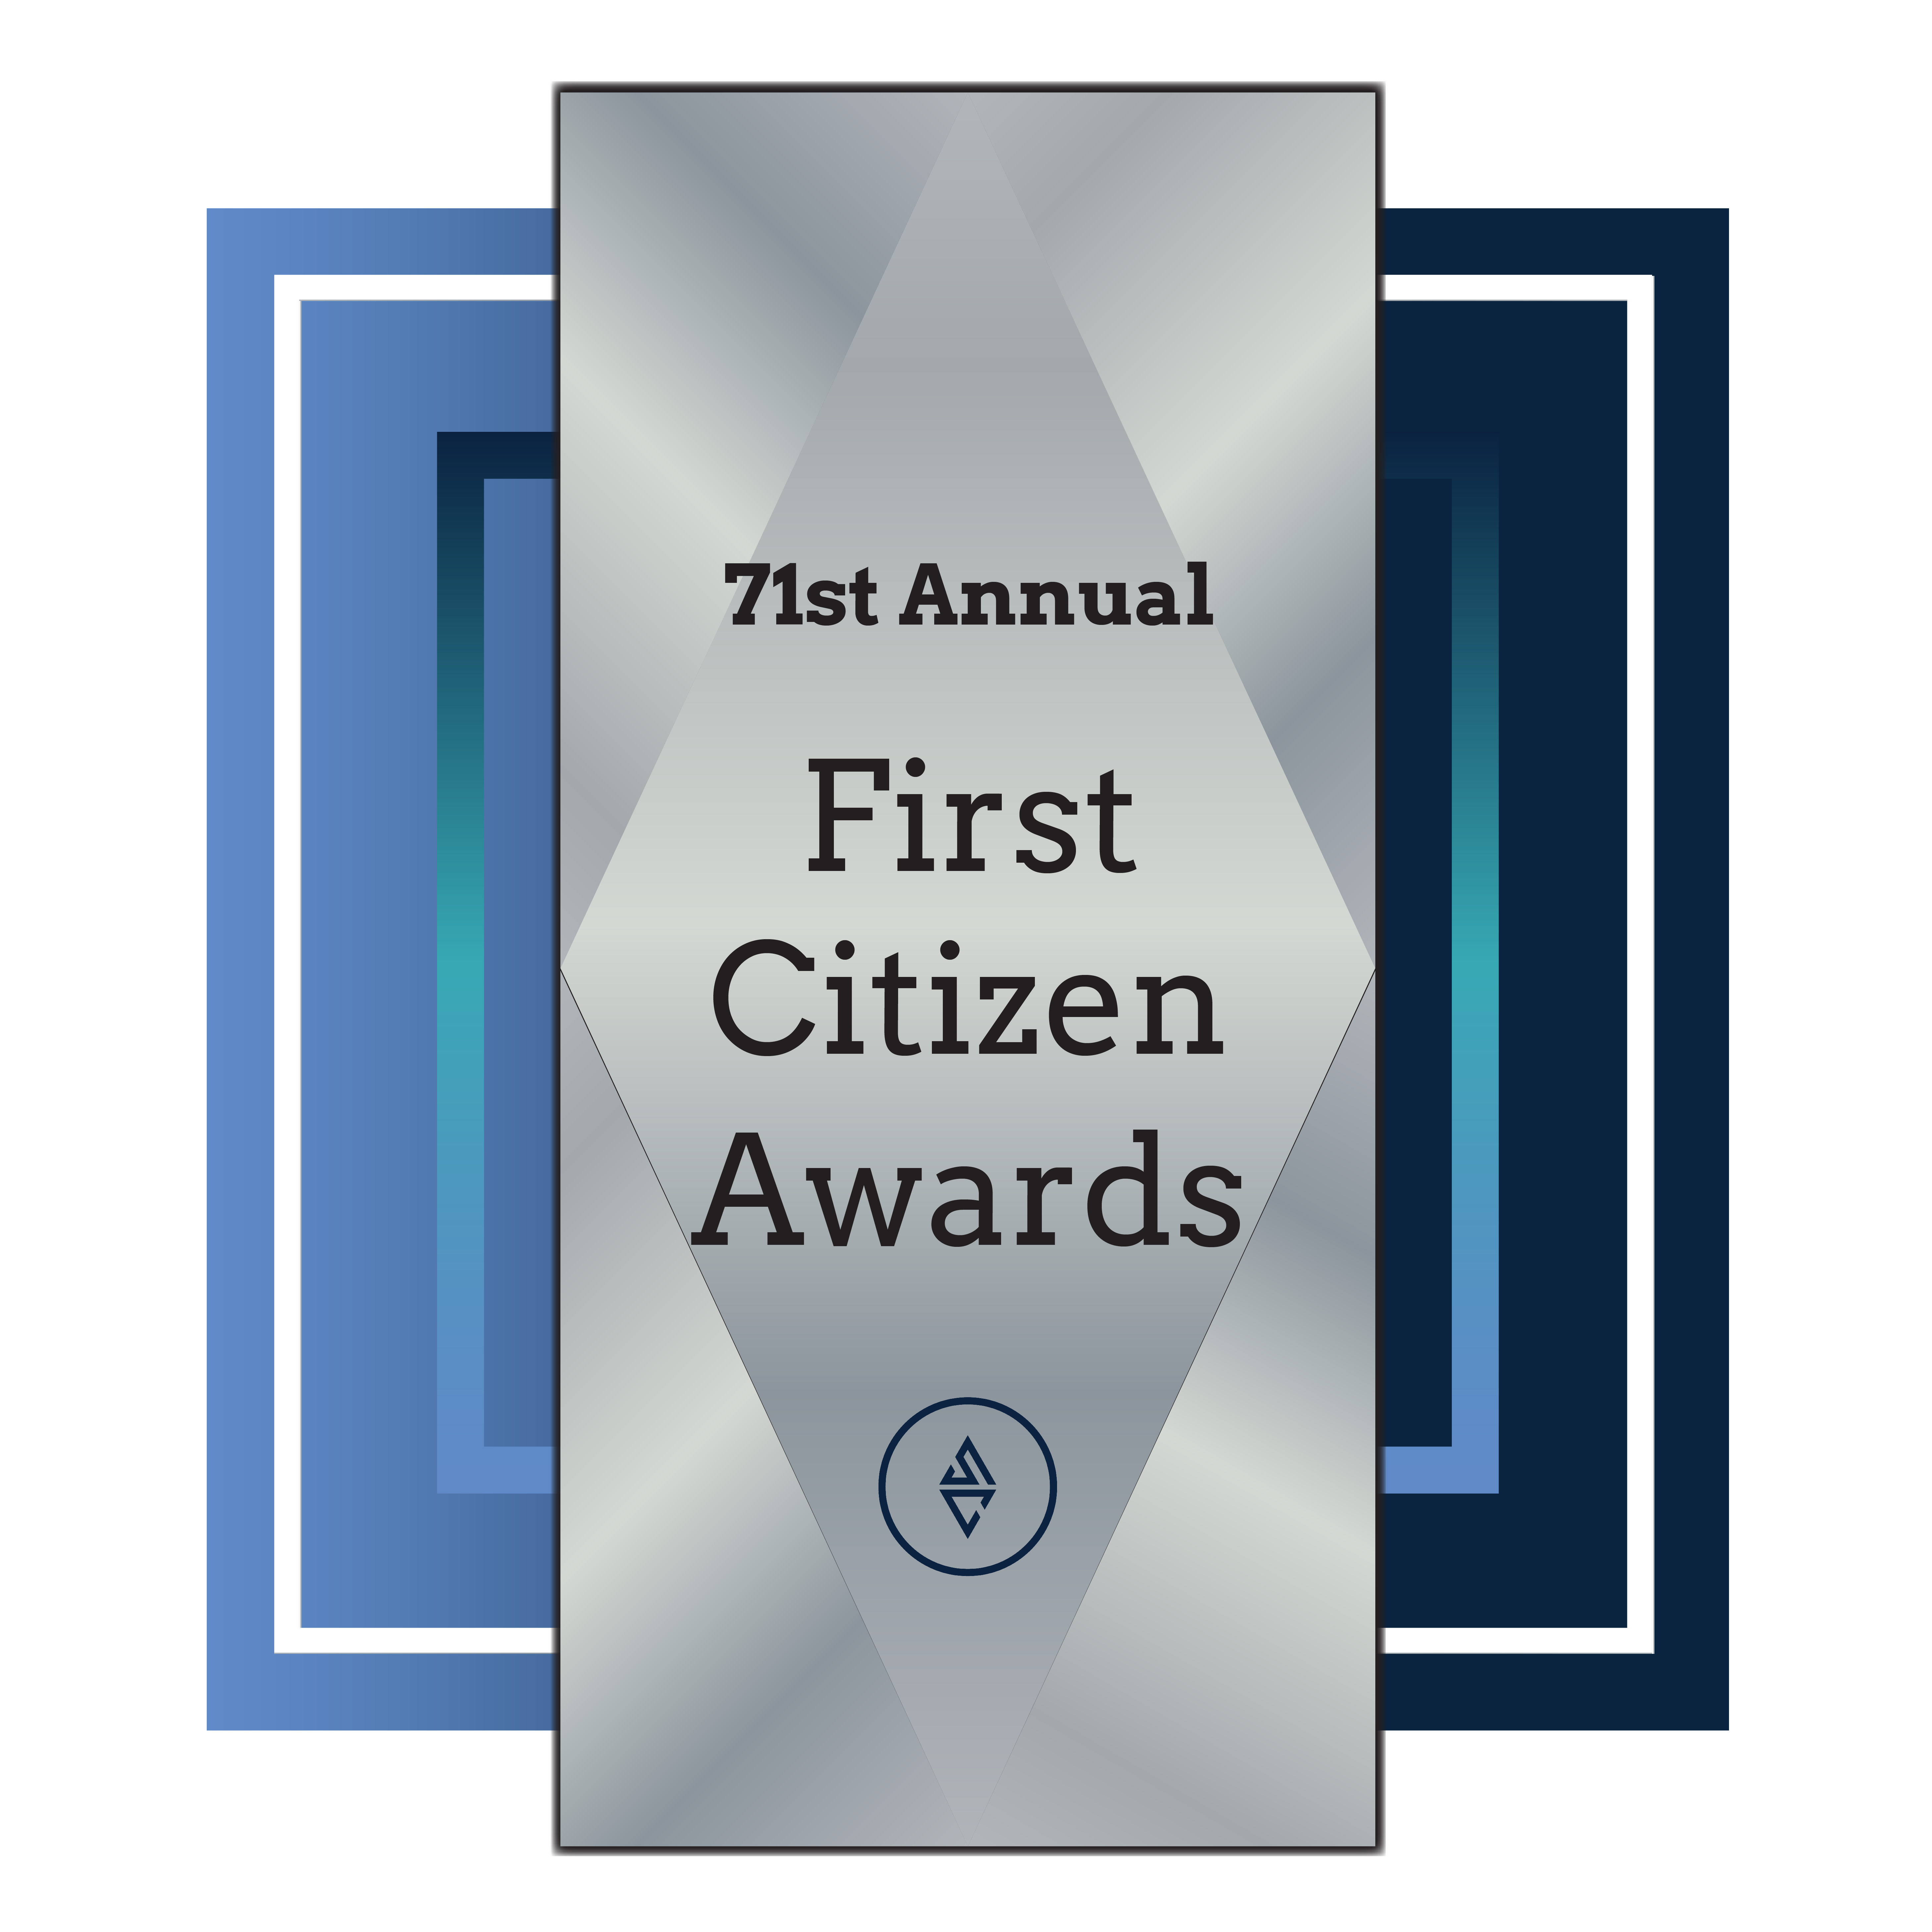 71st Annual First Citizen Awards